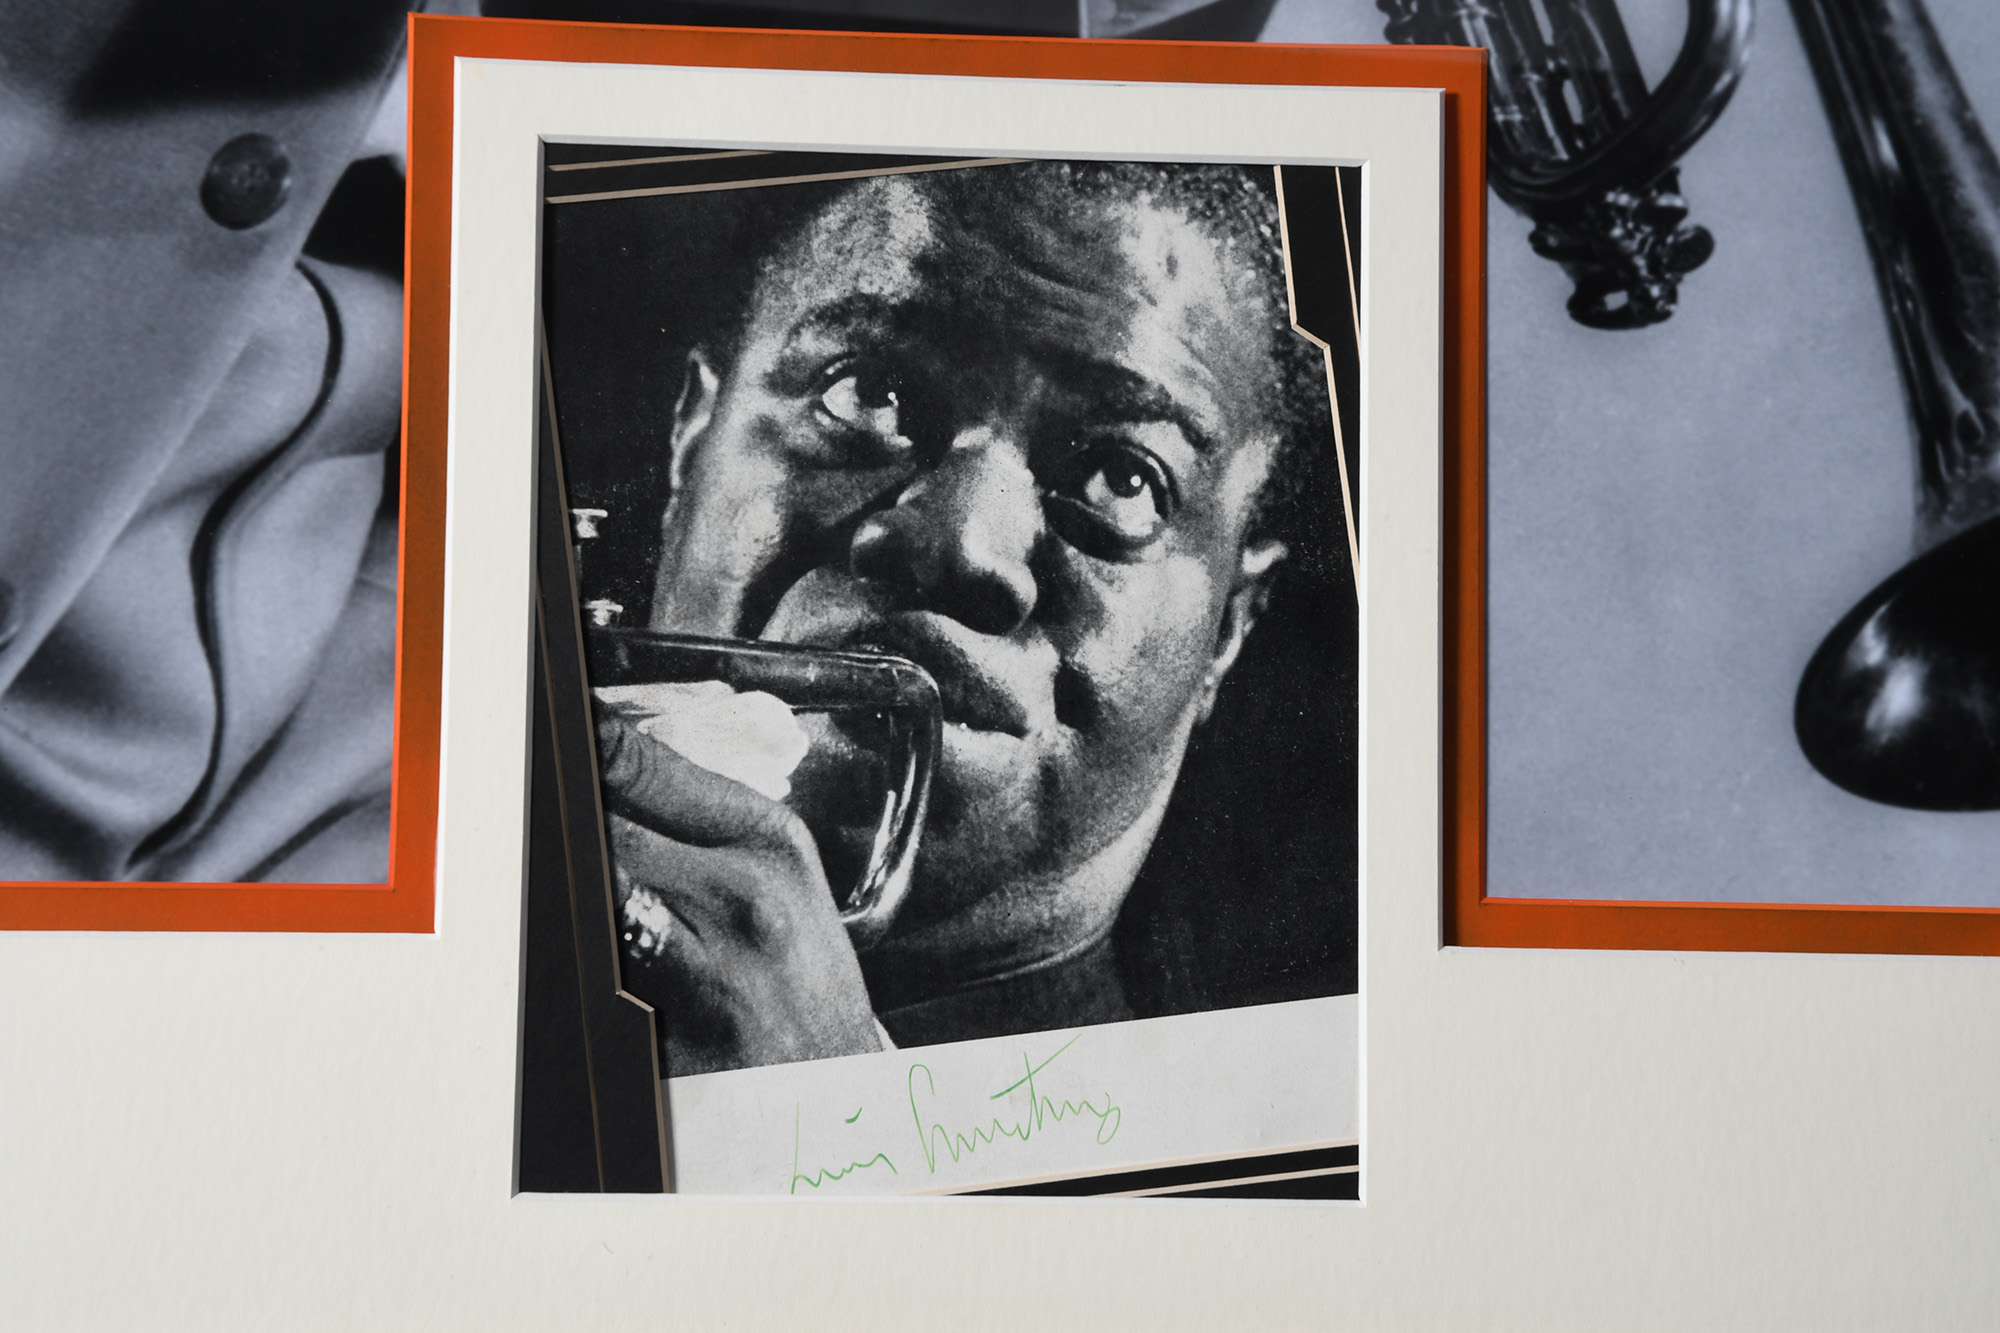 Louis Armstrong Framed Signature Presentation - Image 2 of 2